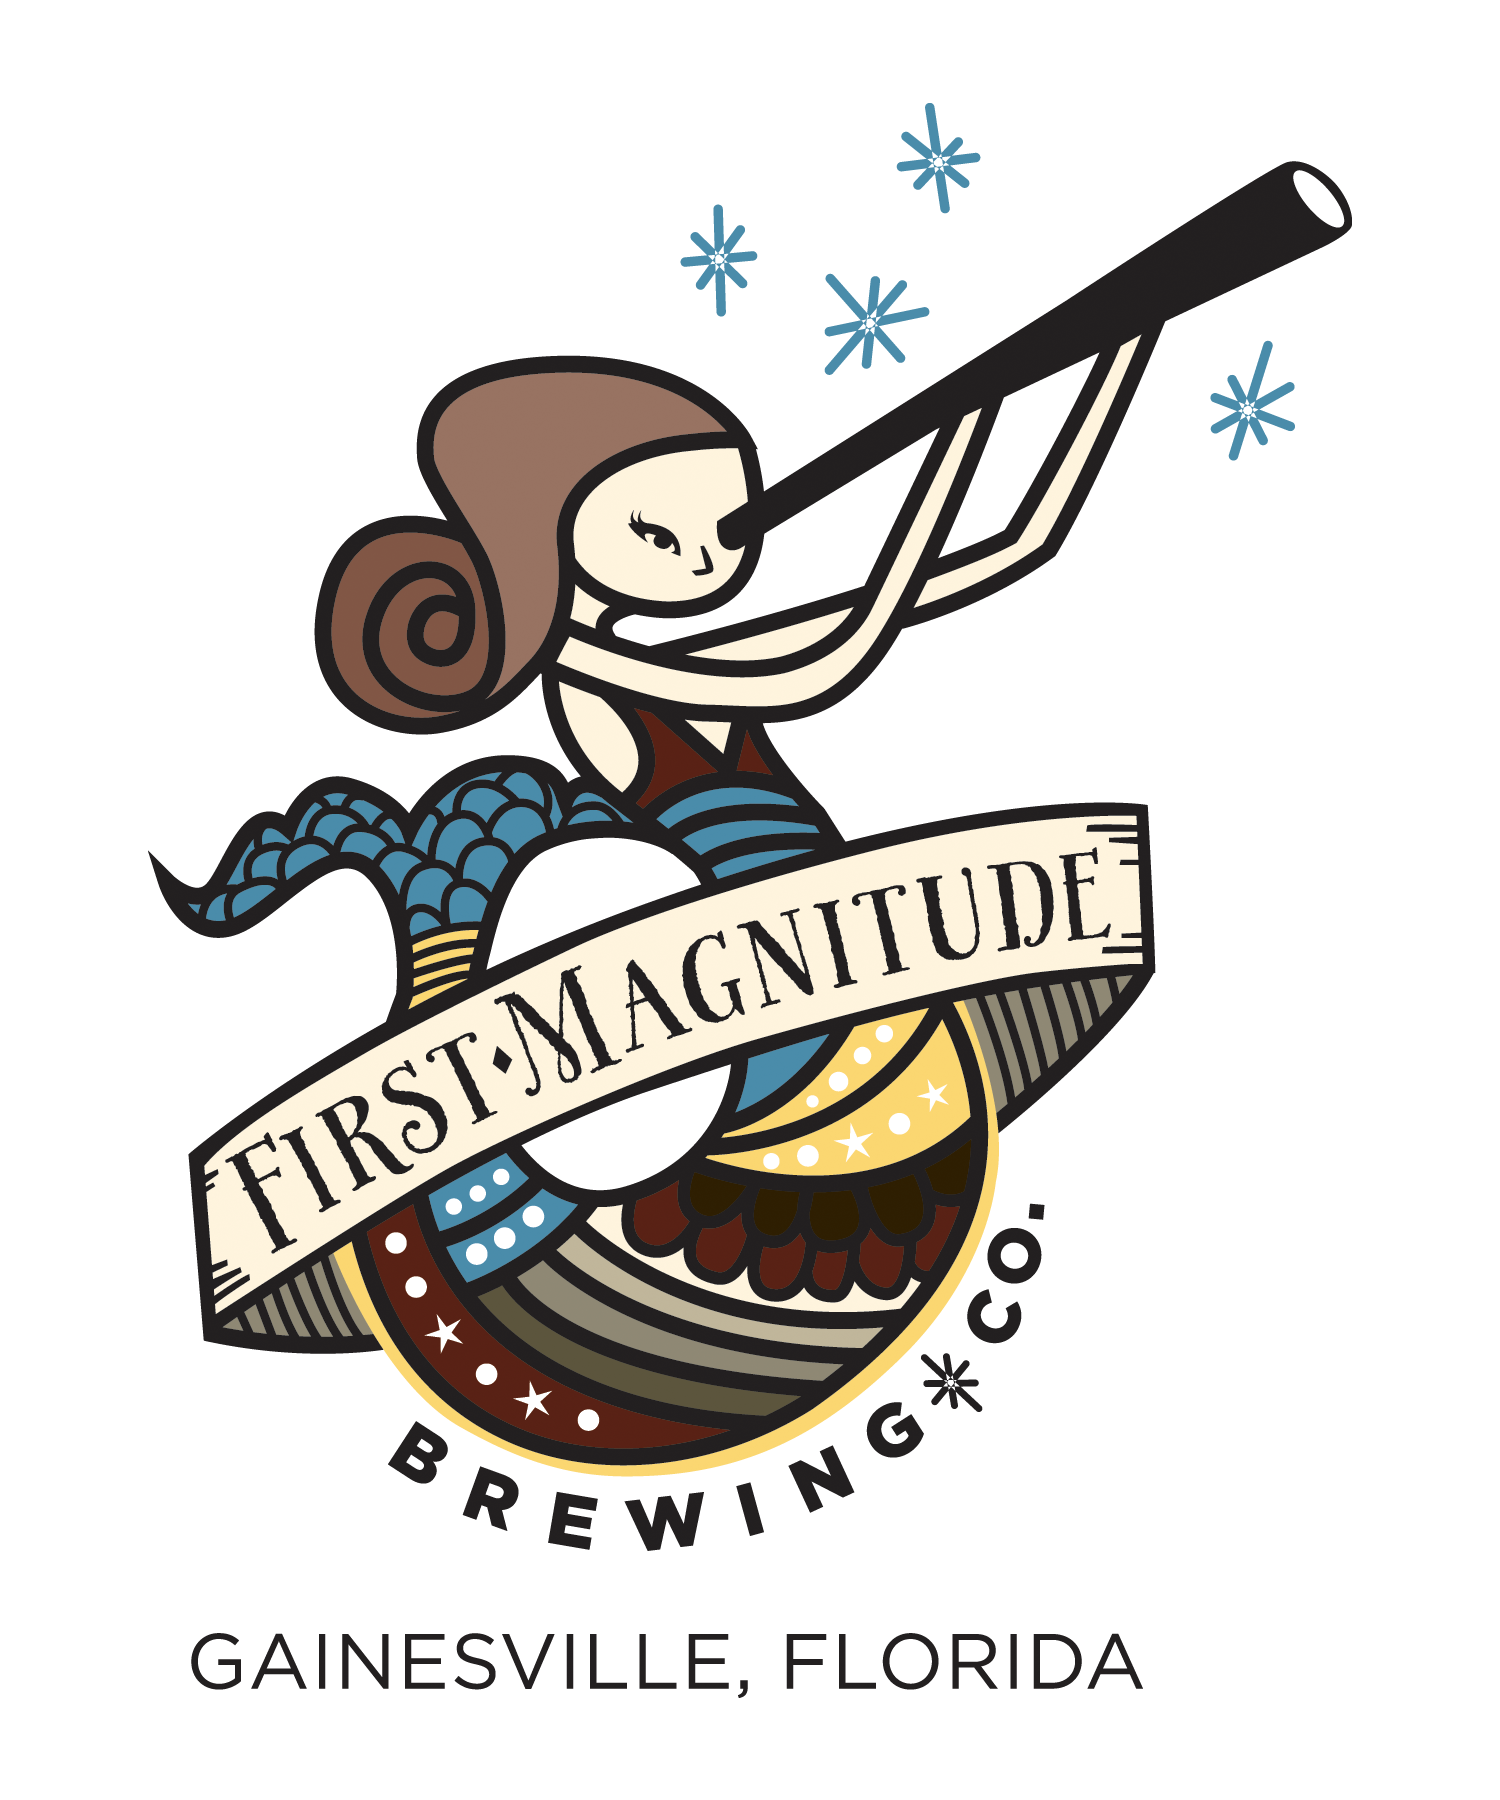 First Magnitude Brewing Co.